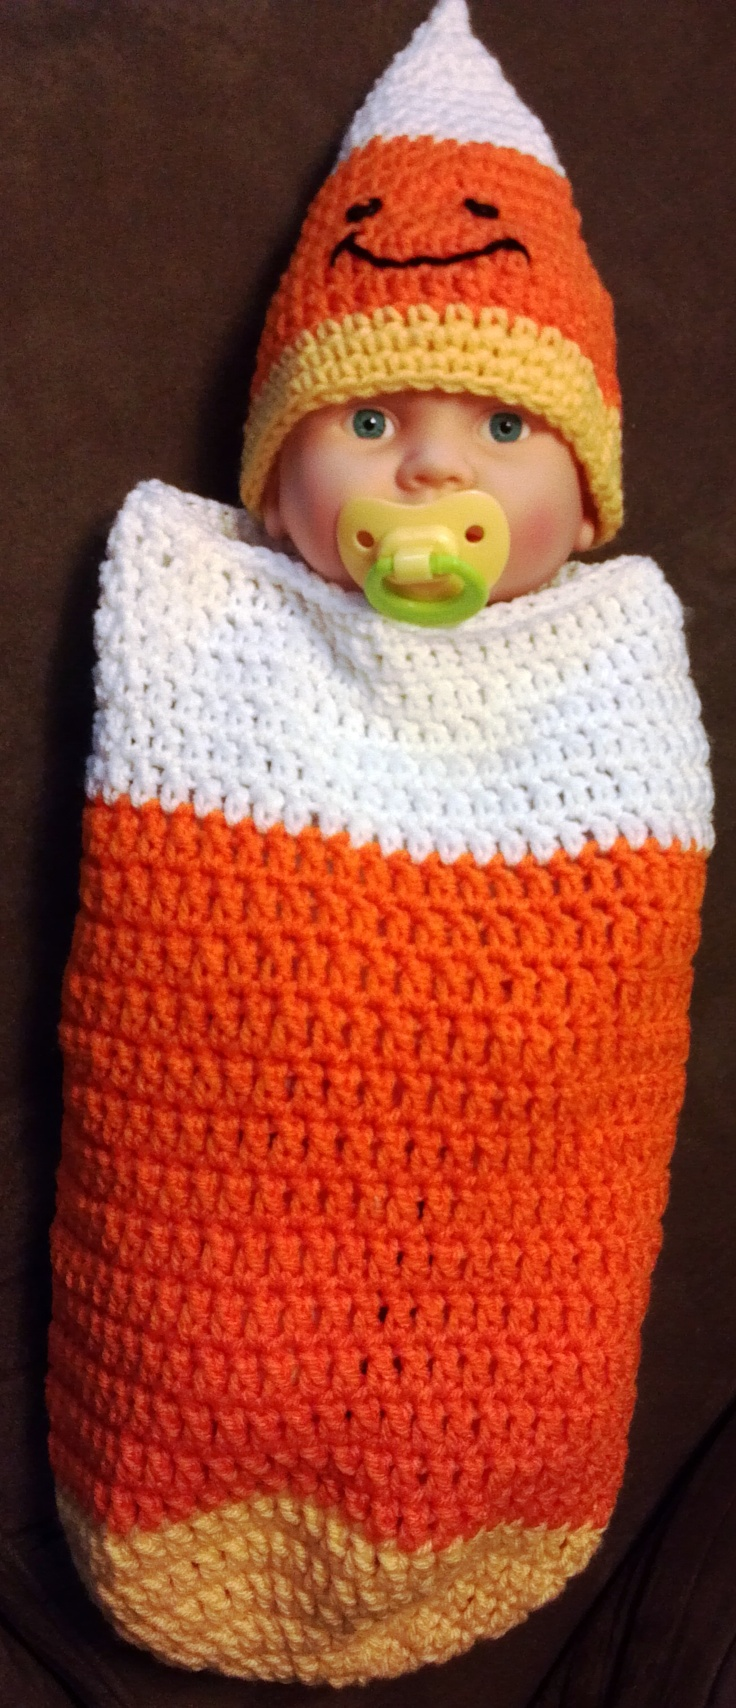 Cottage snuggle sack and hat crochet baby baby cocoon and sacks - Candy Corn Cocoon And Hat